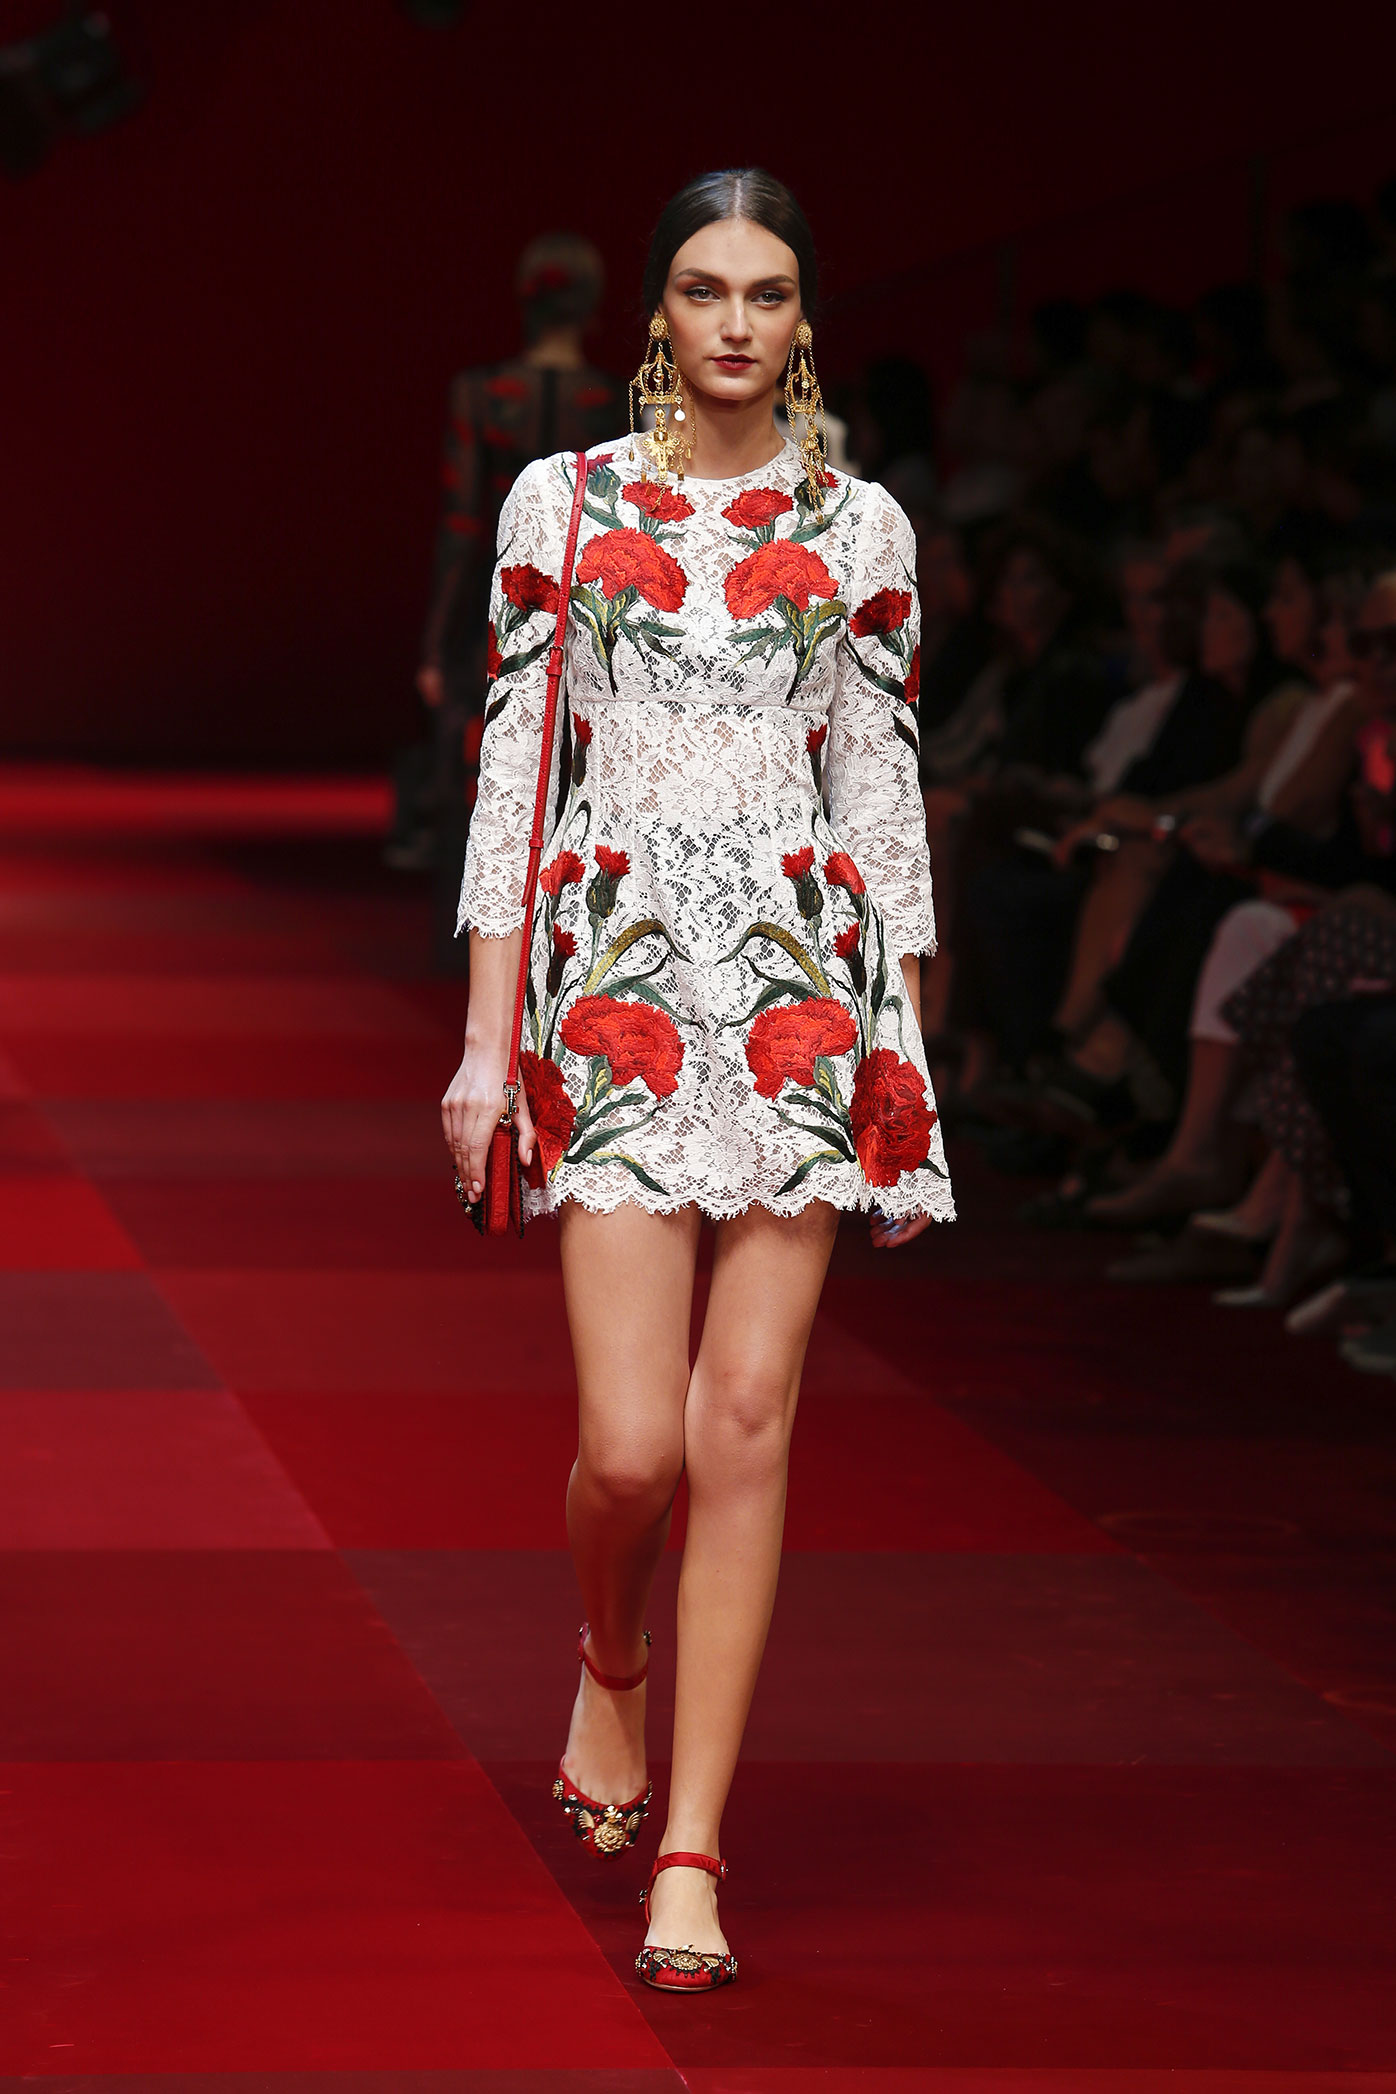 dolce-and-gabbana-summer-2015-women-fashion-show-runway-75-zoom